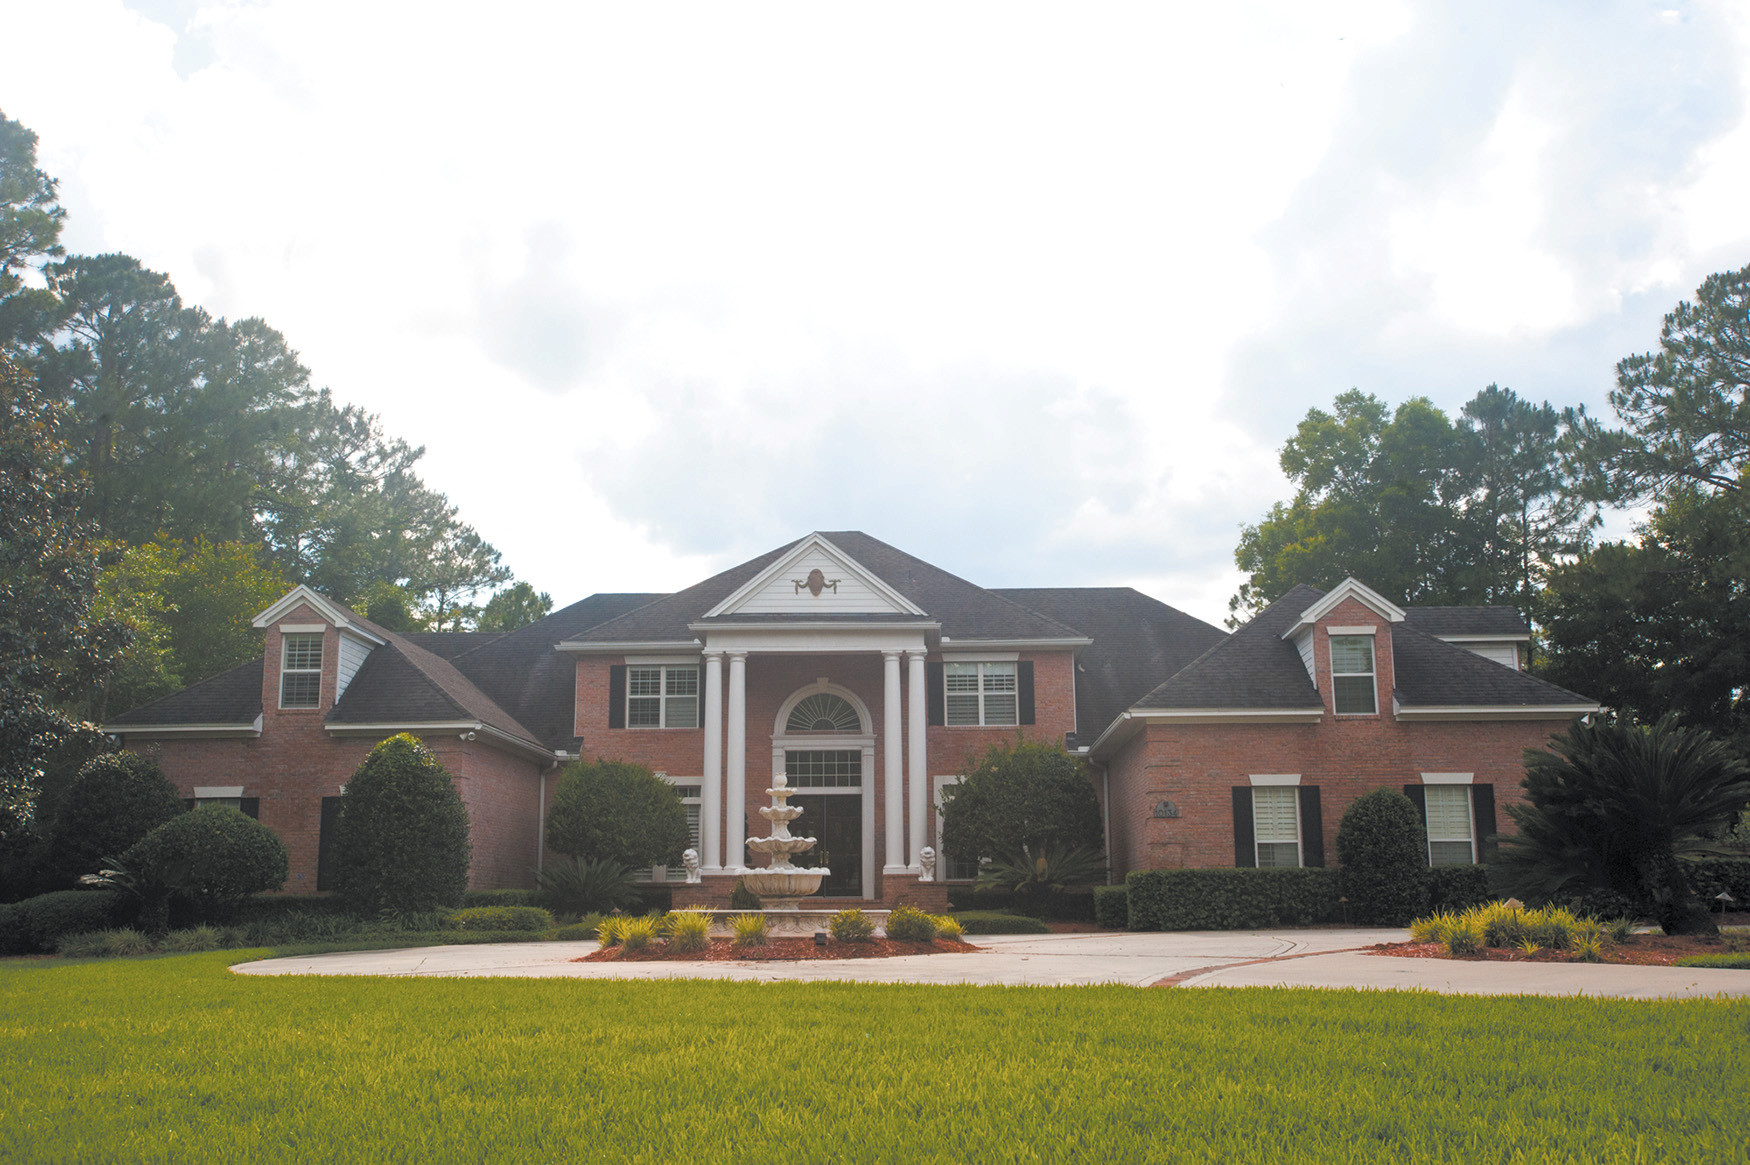 6. Levy Residence